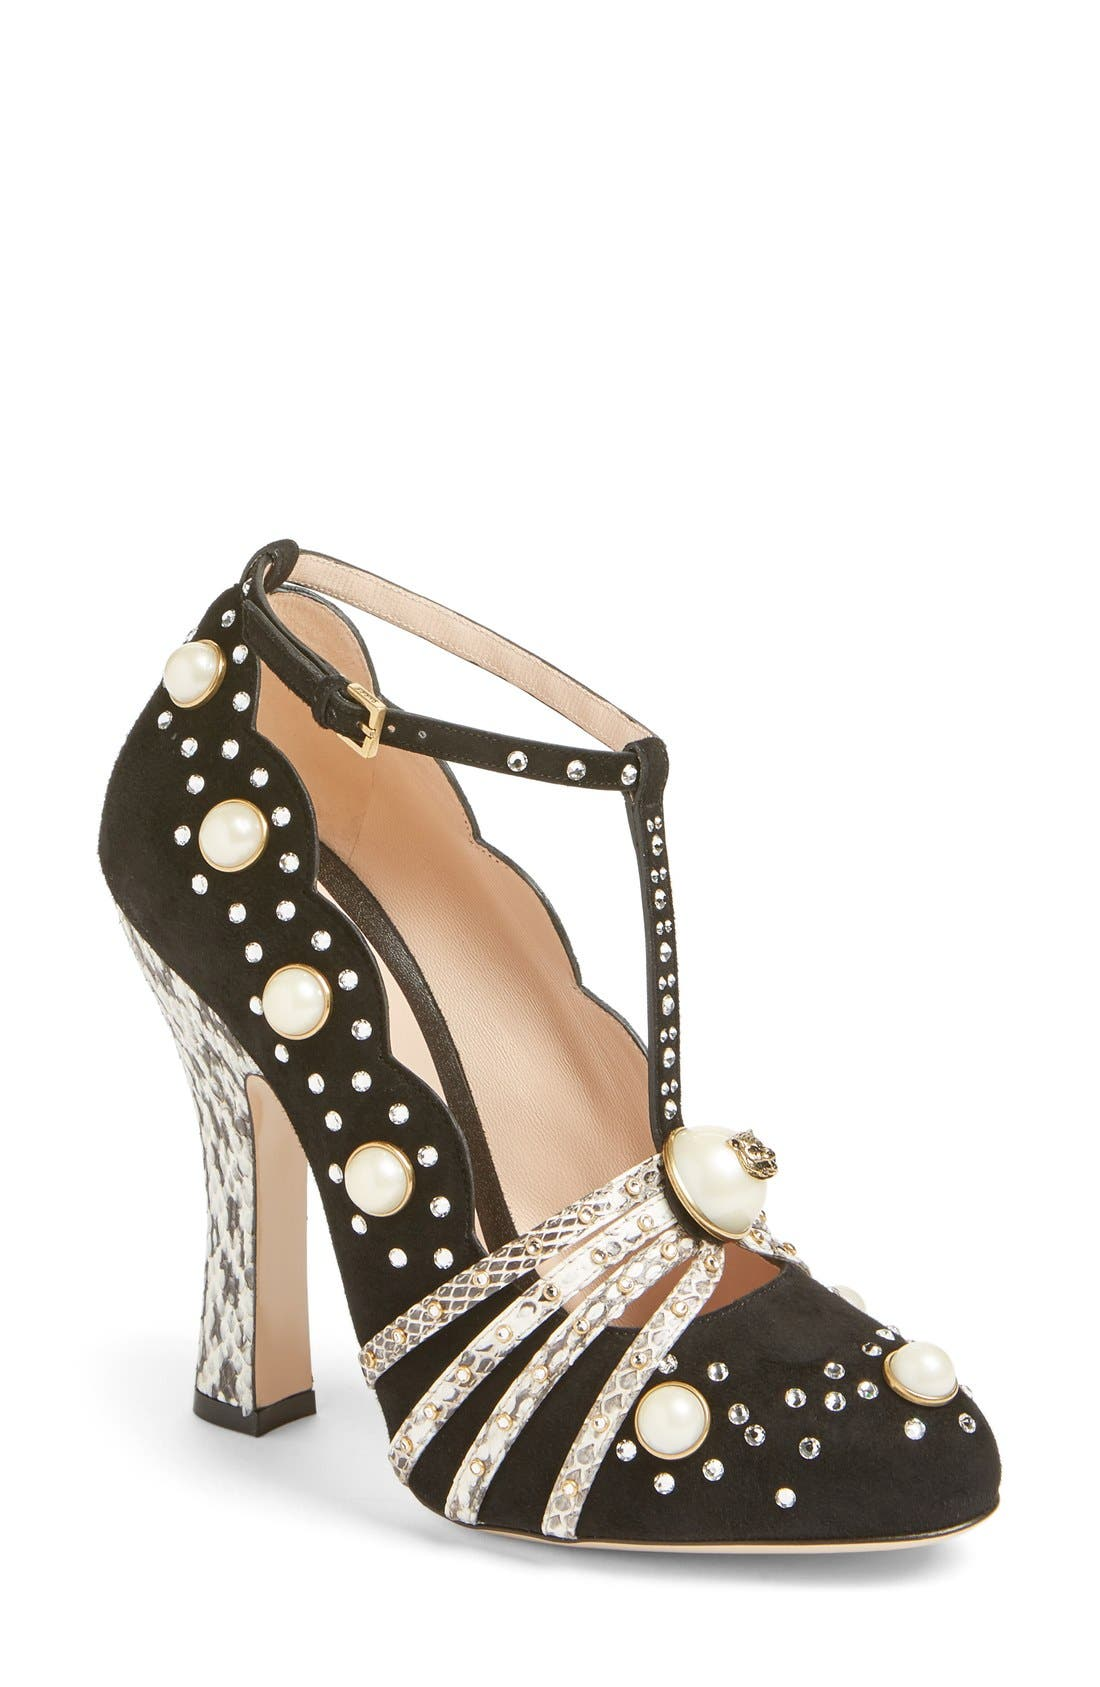 Main Image - Gucci Ofelia Pearly Crystal Embellished Pump (Women)